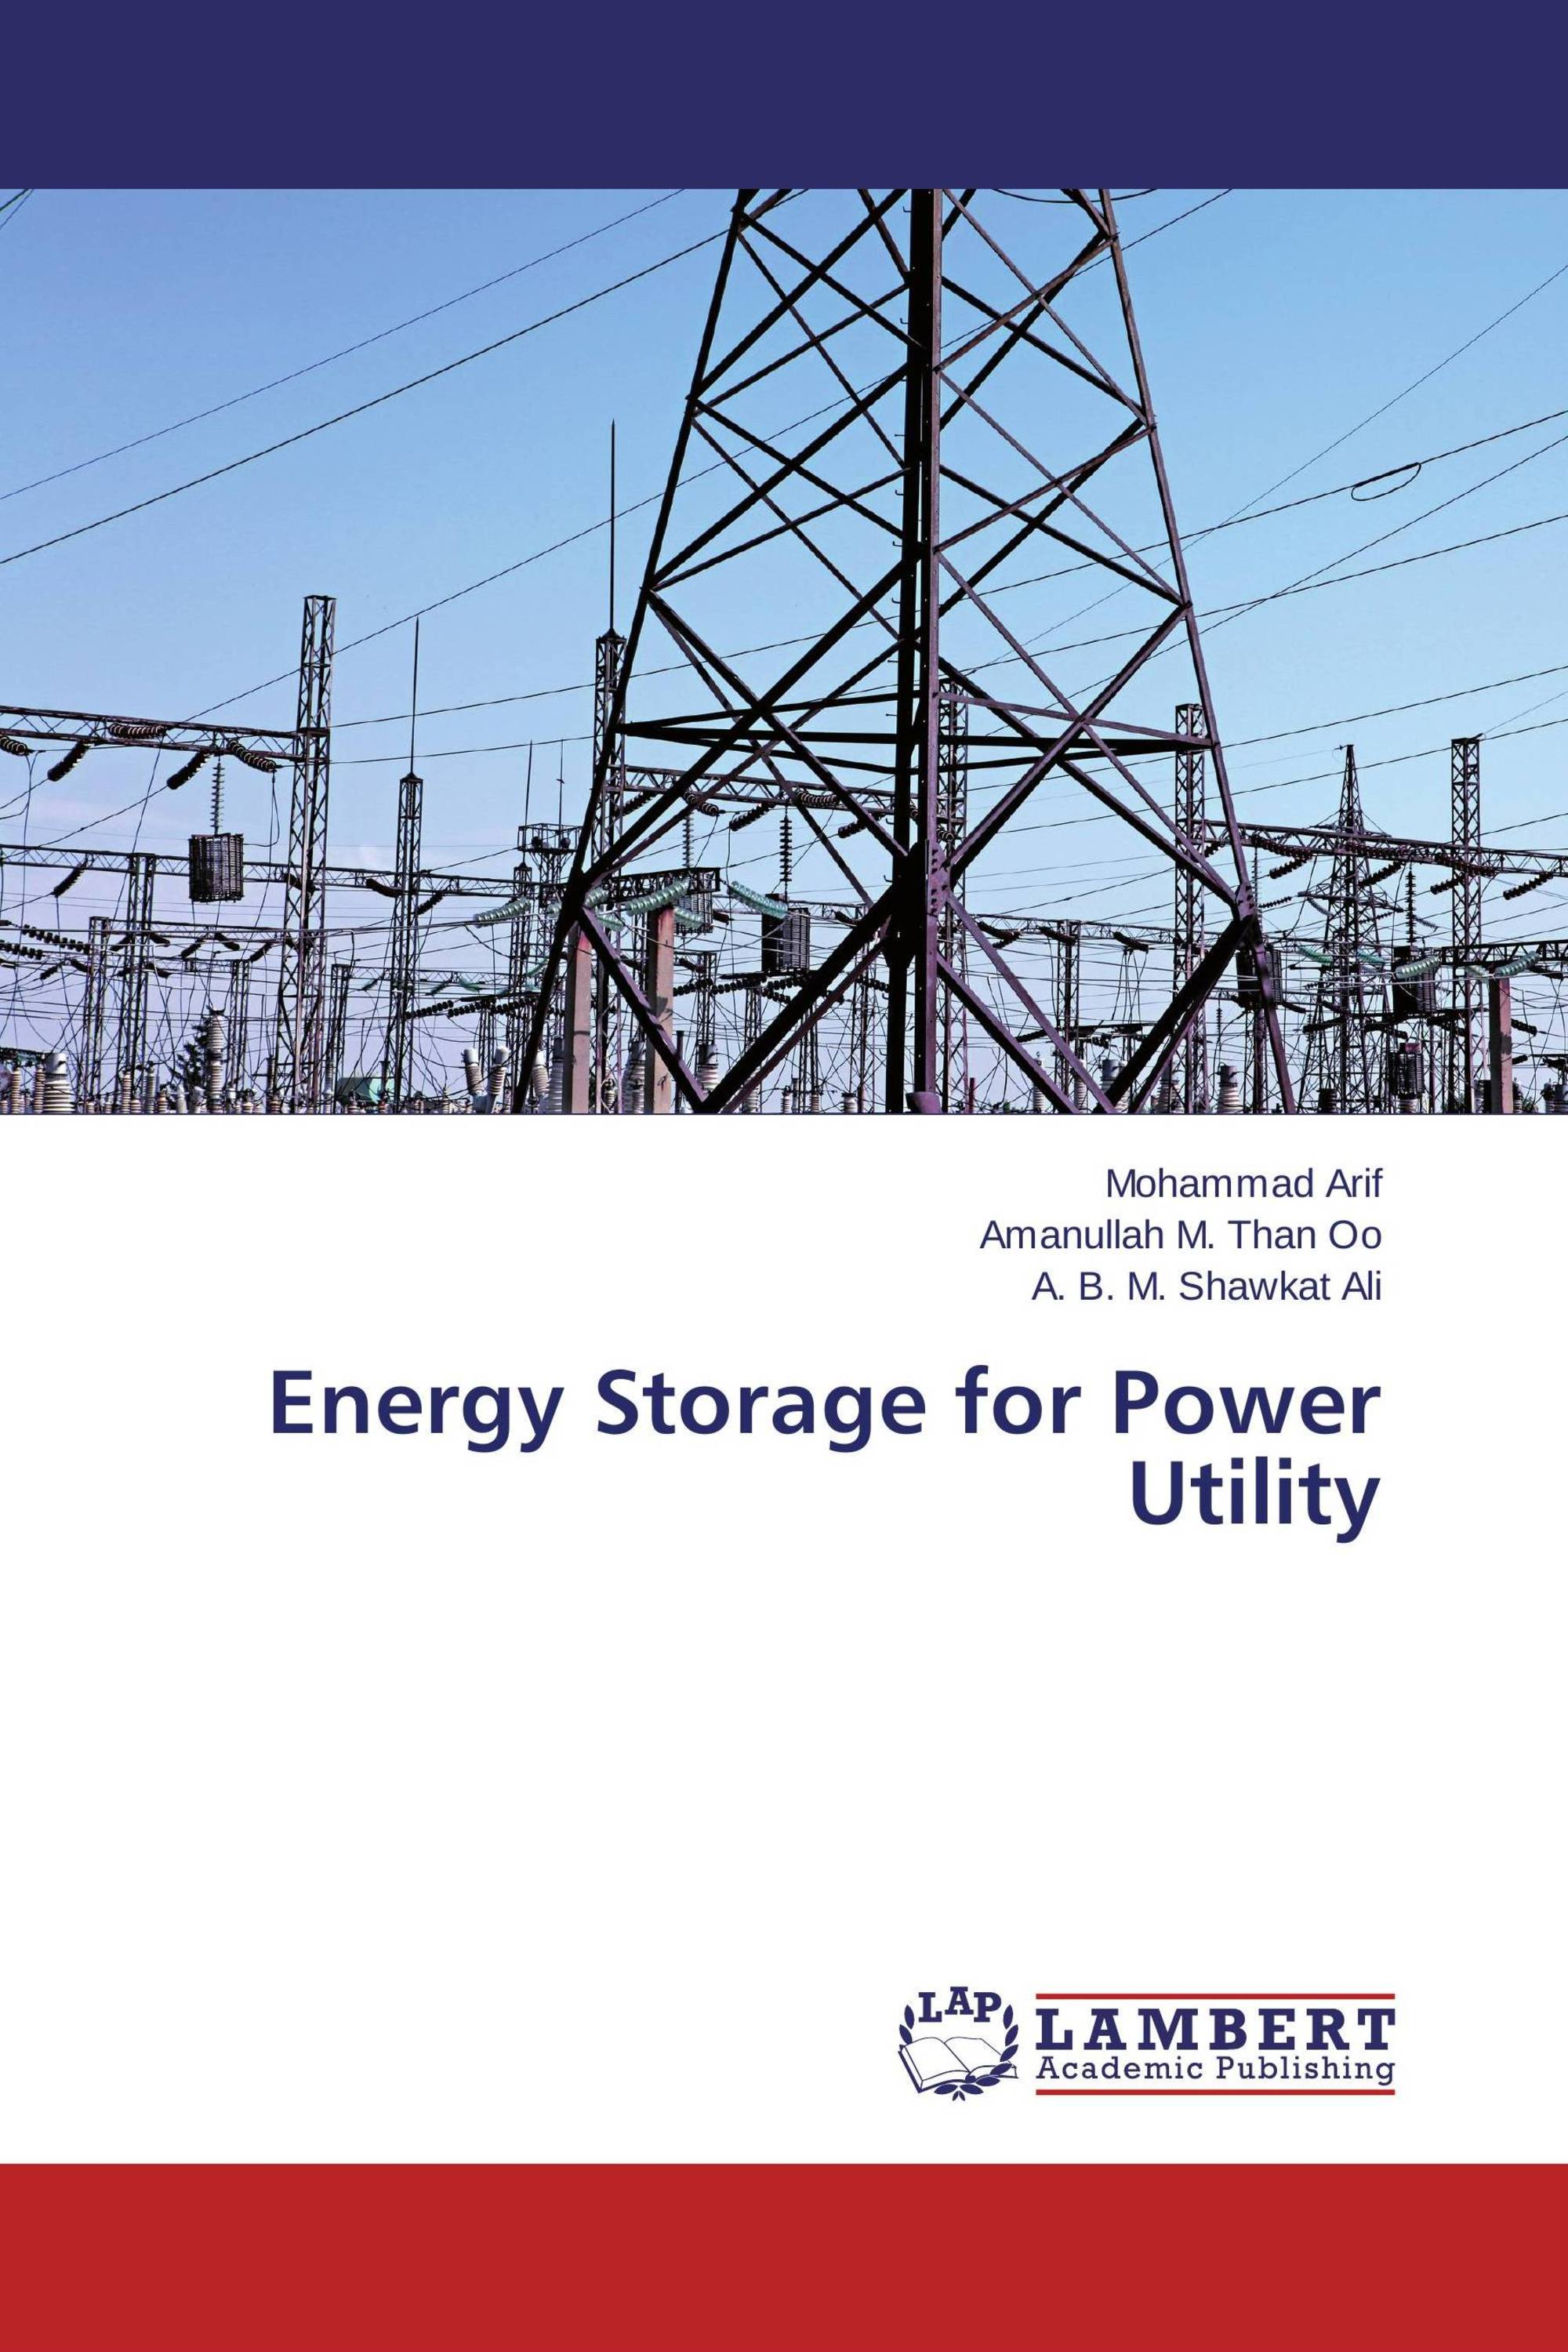 Energy Storage for Power Utility